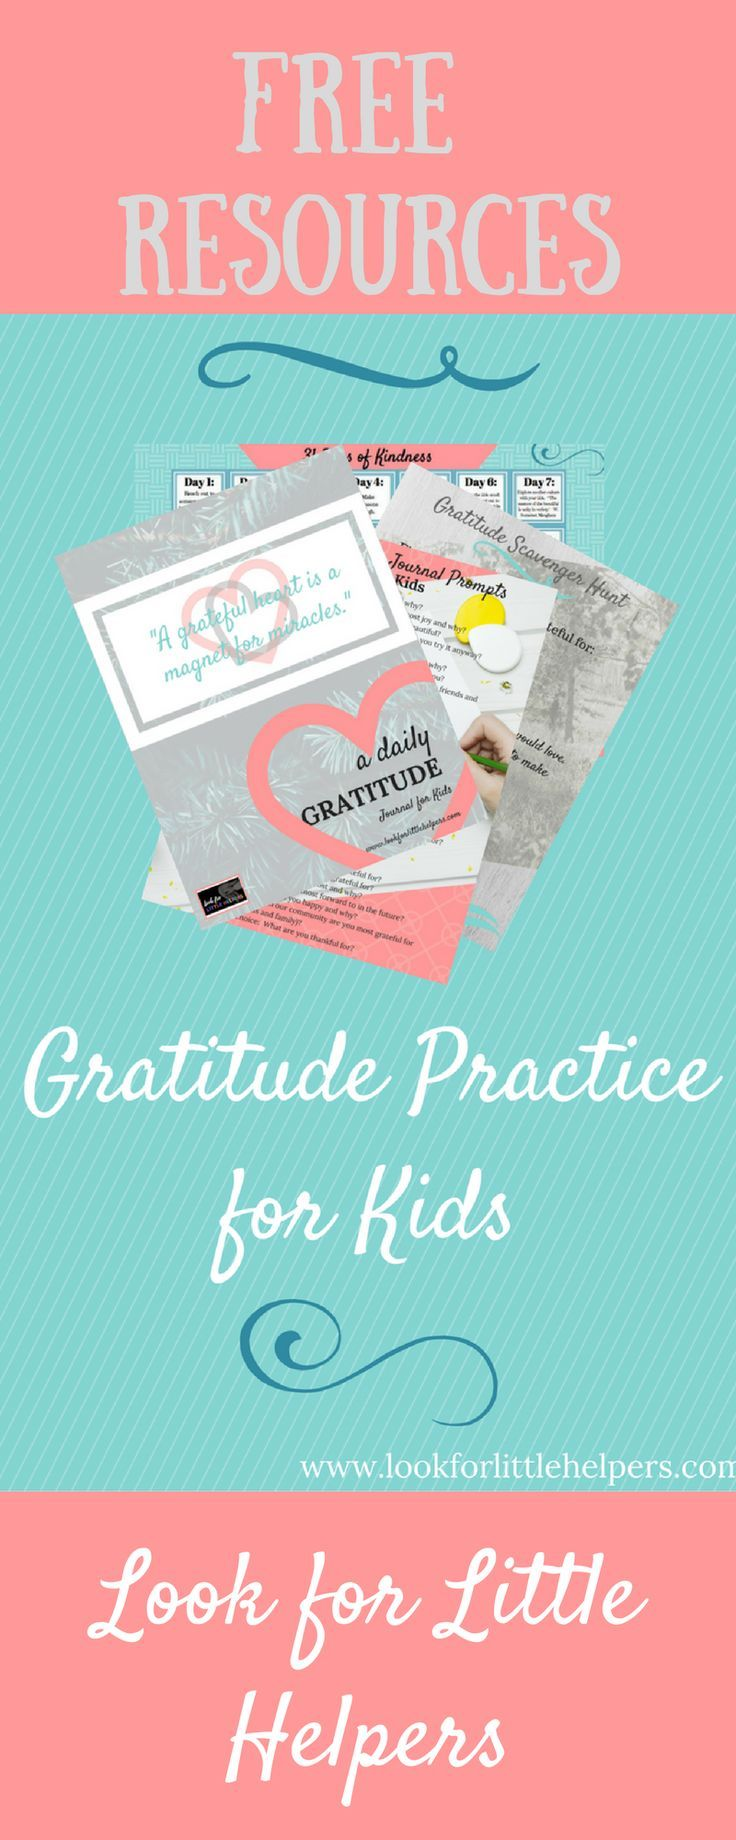 FREE printable activities to teach kids to be grateful, FREE printable random acts of kindness calendar, and FREE printable thank you cards for kids!  #kindness, #gratitude, #randomactsofkindness, #kindnesscounts